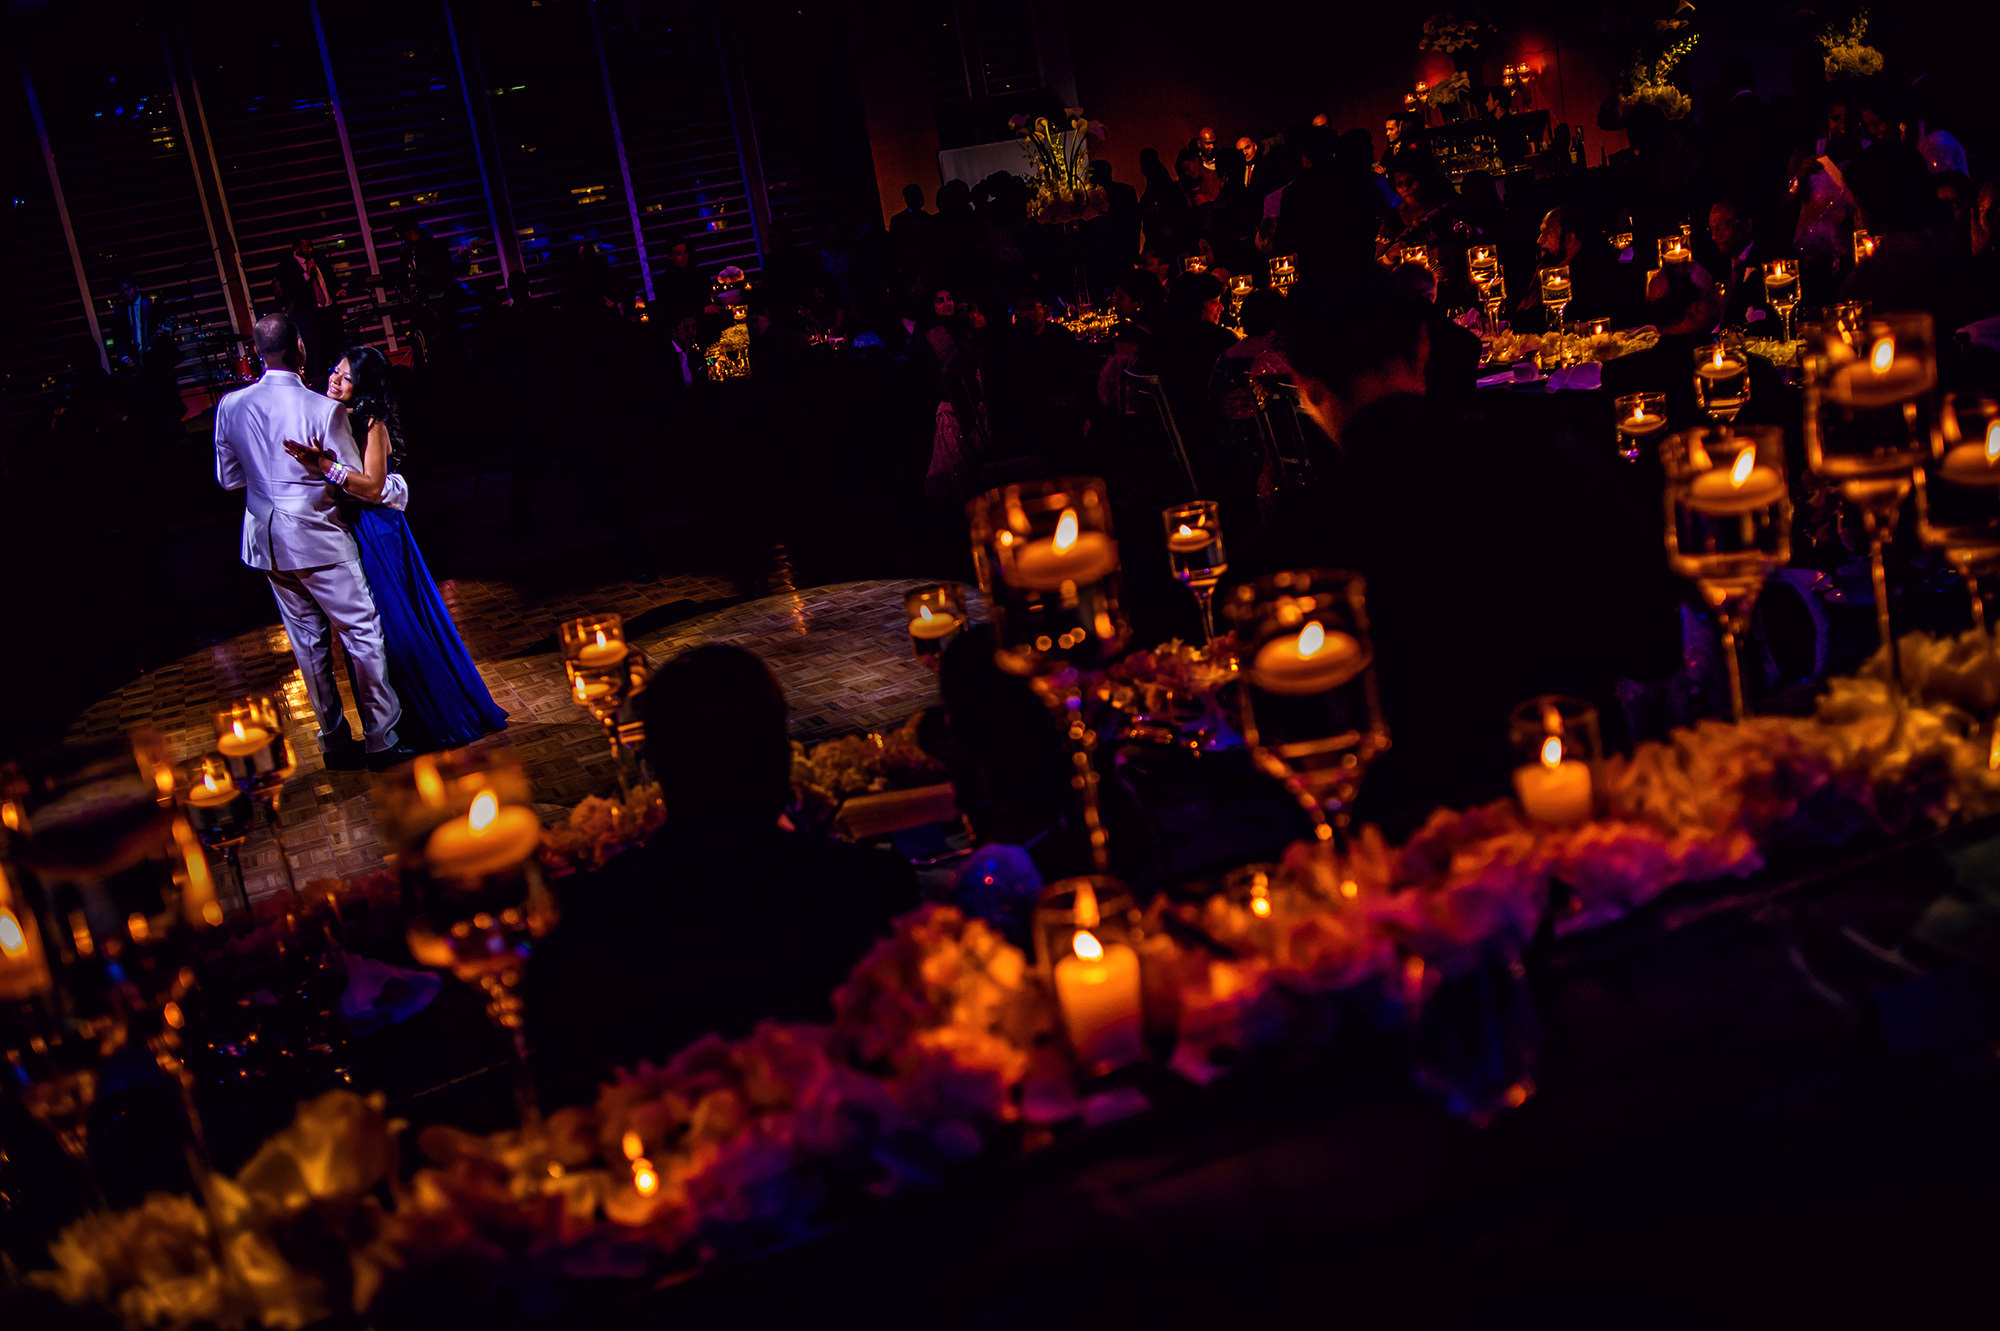 First dance surrounded by candlelight - photo by Davina + Daniel - Toronto, Canada